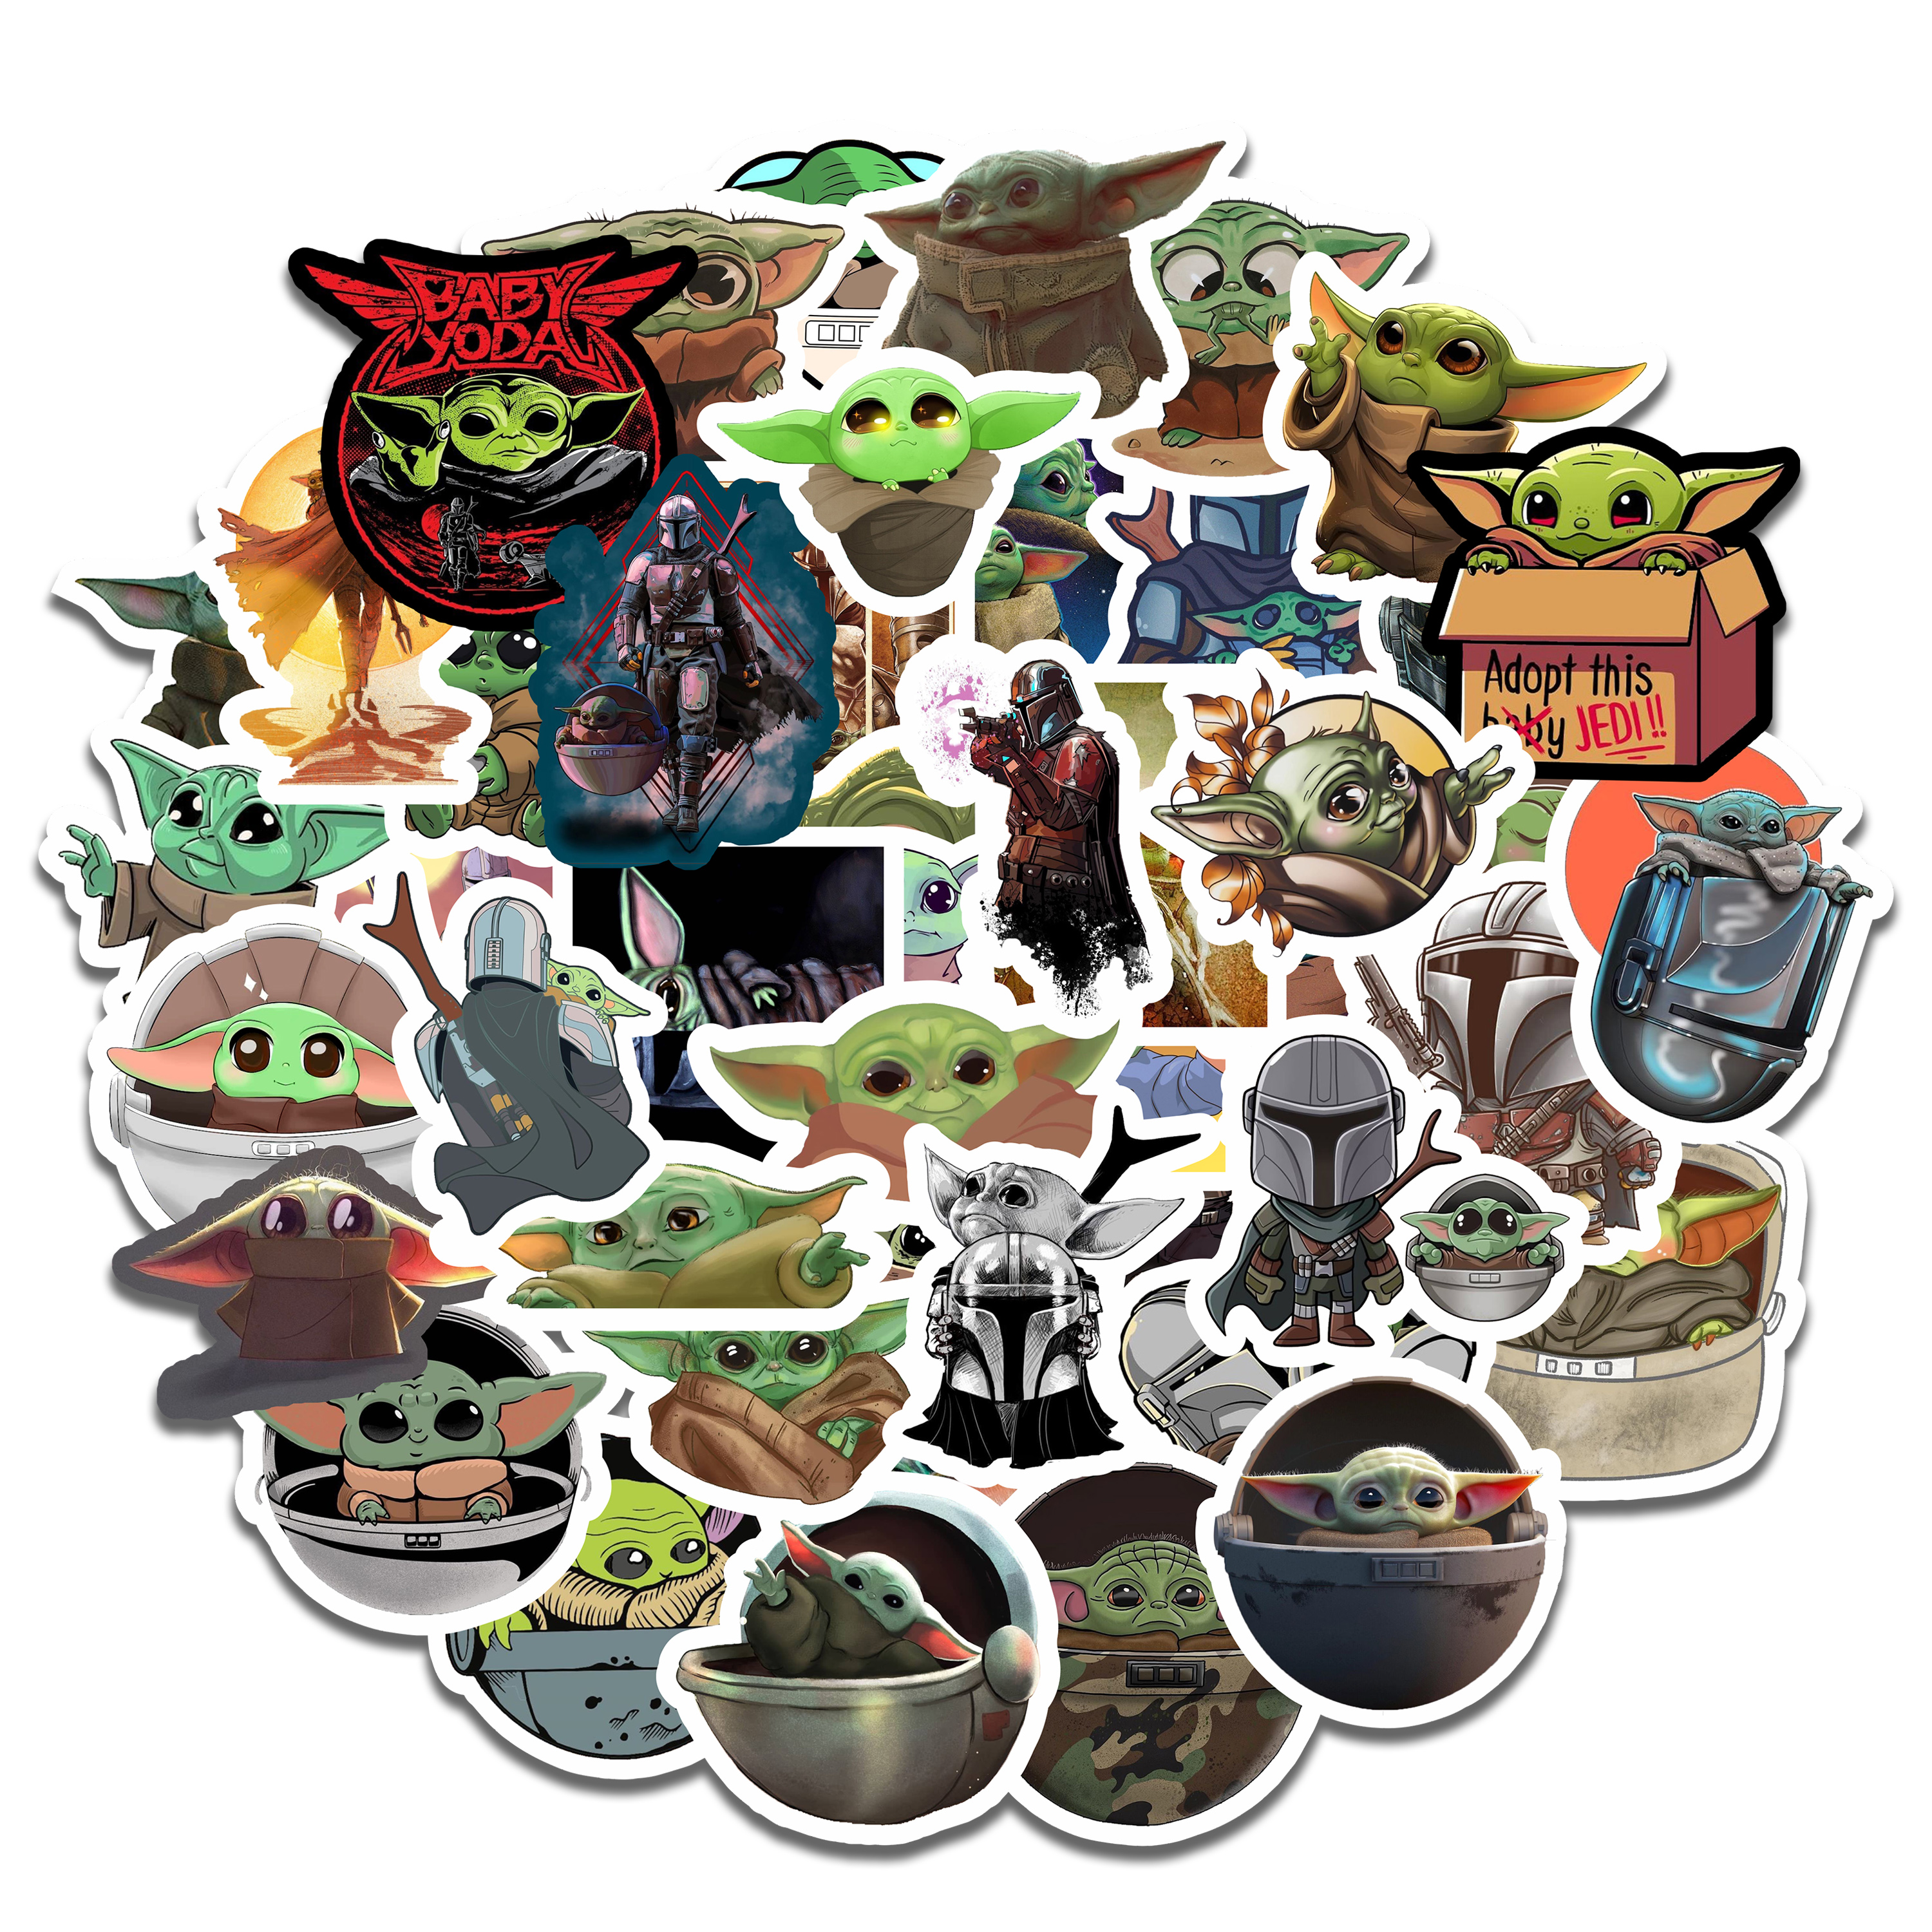 50Pcs Baby Yoda Star-wars Mandalorian Stickers For Laptop Skateboard Home Decoration Car Scooter Decal